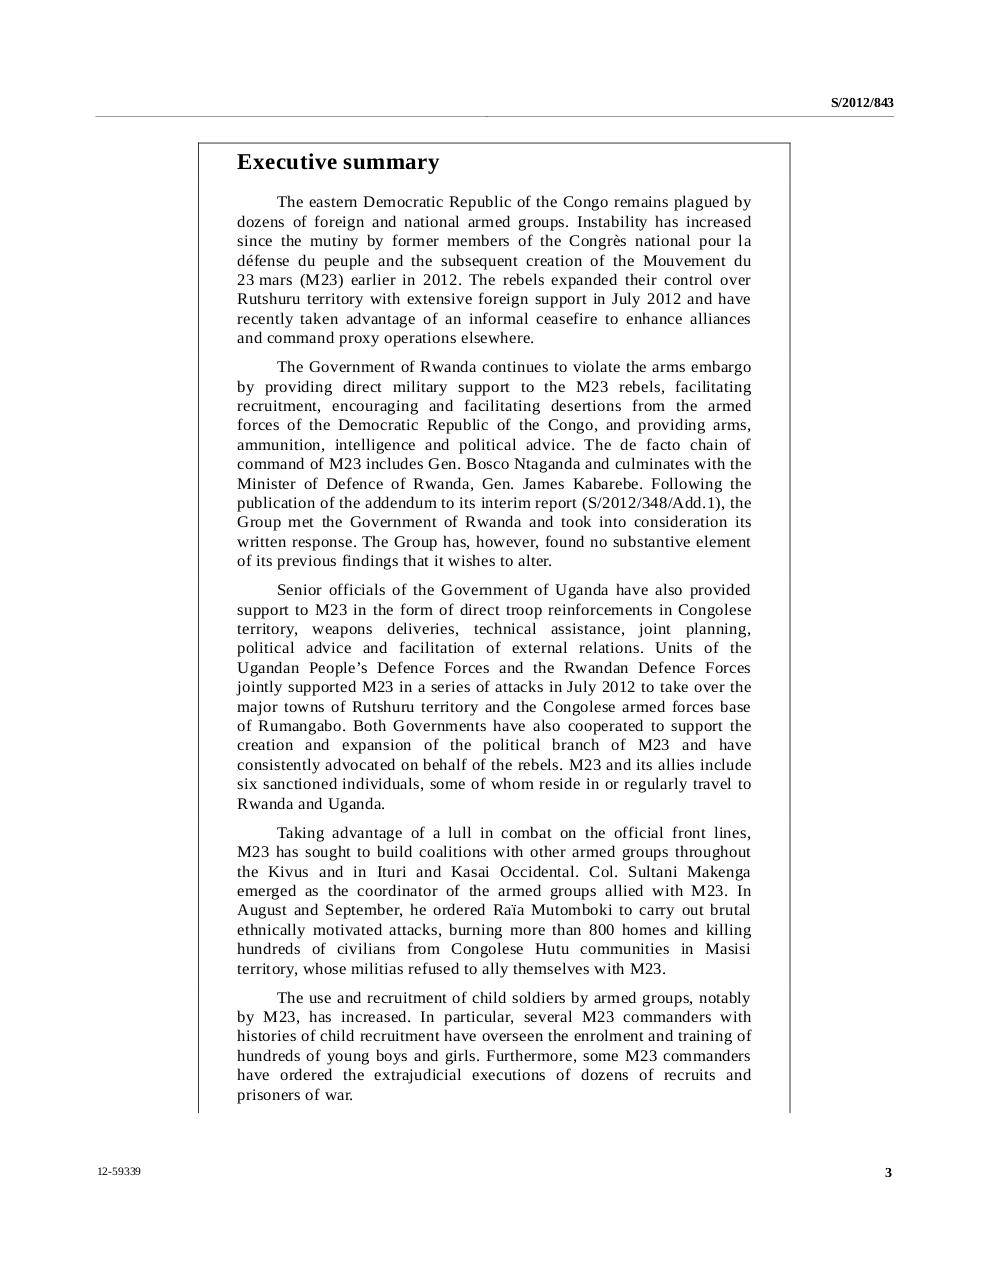 Rapport final du Groupe d'experts sur la République démocratique du Congo 15 novembre 2012  EN.pdf - page 3/204